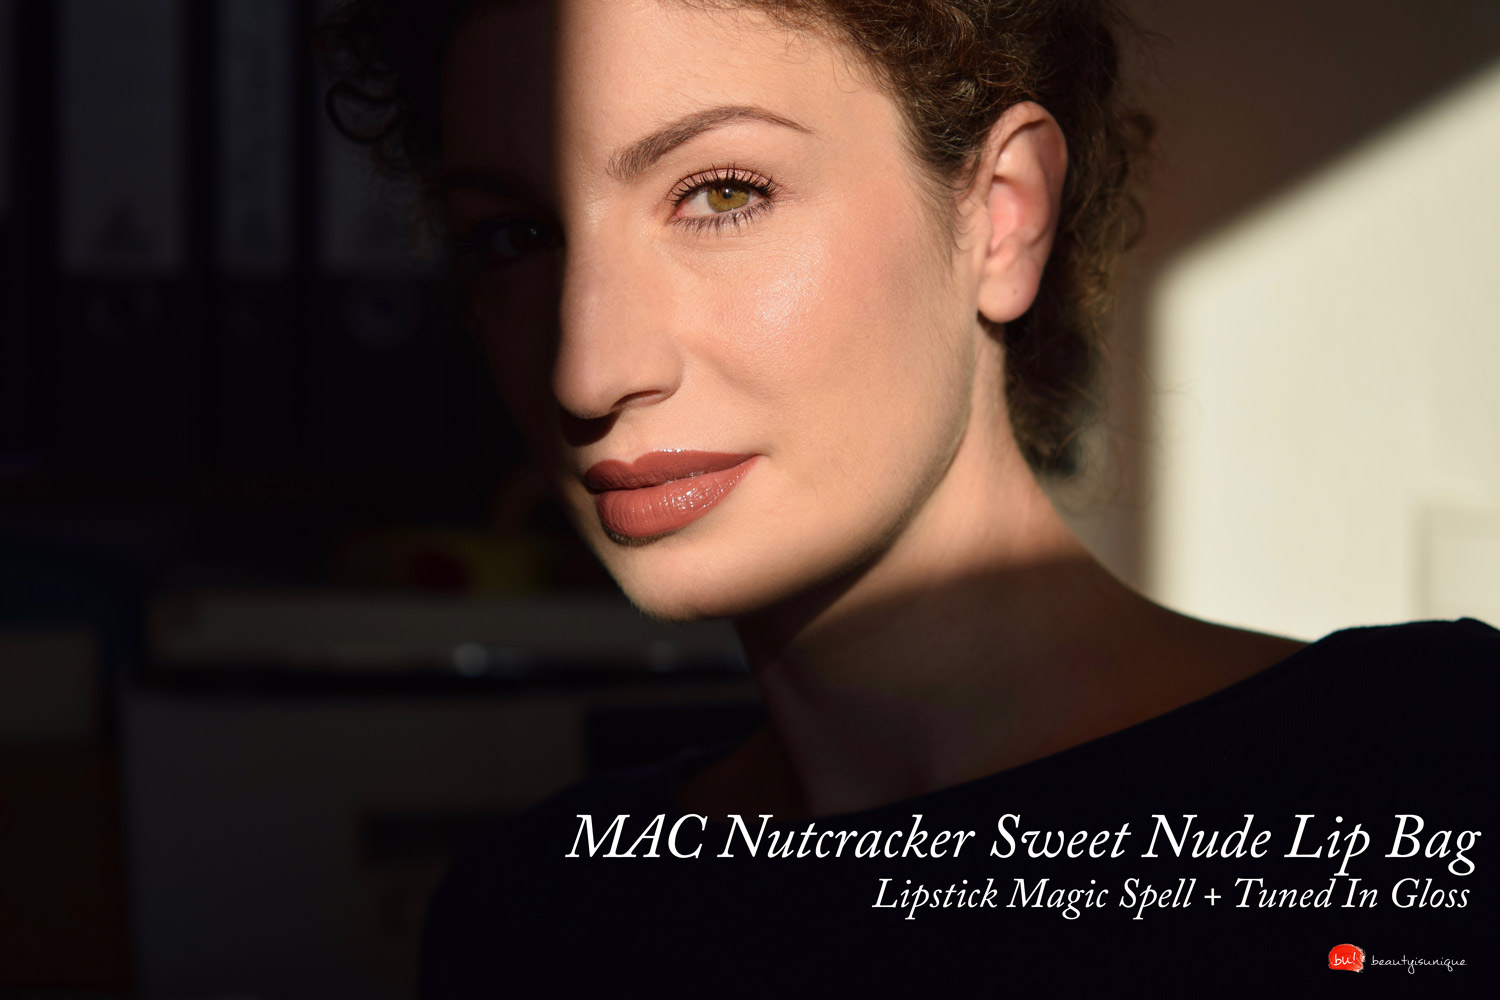 Mac-nutcracker-sweet-nude-lip-bag